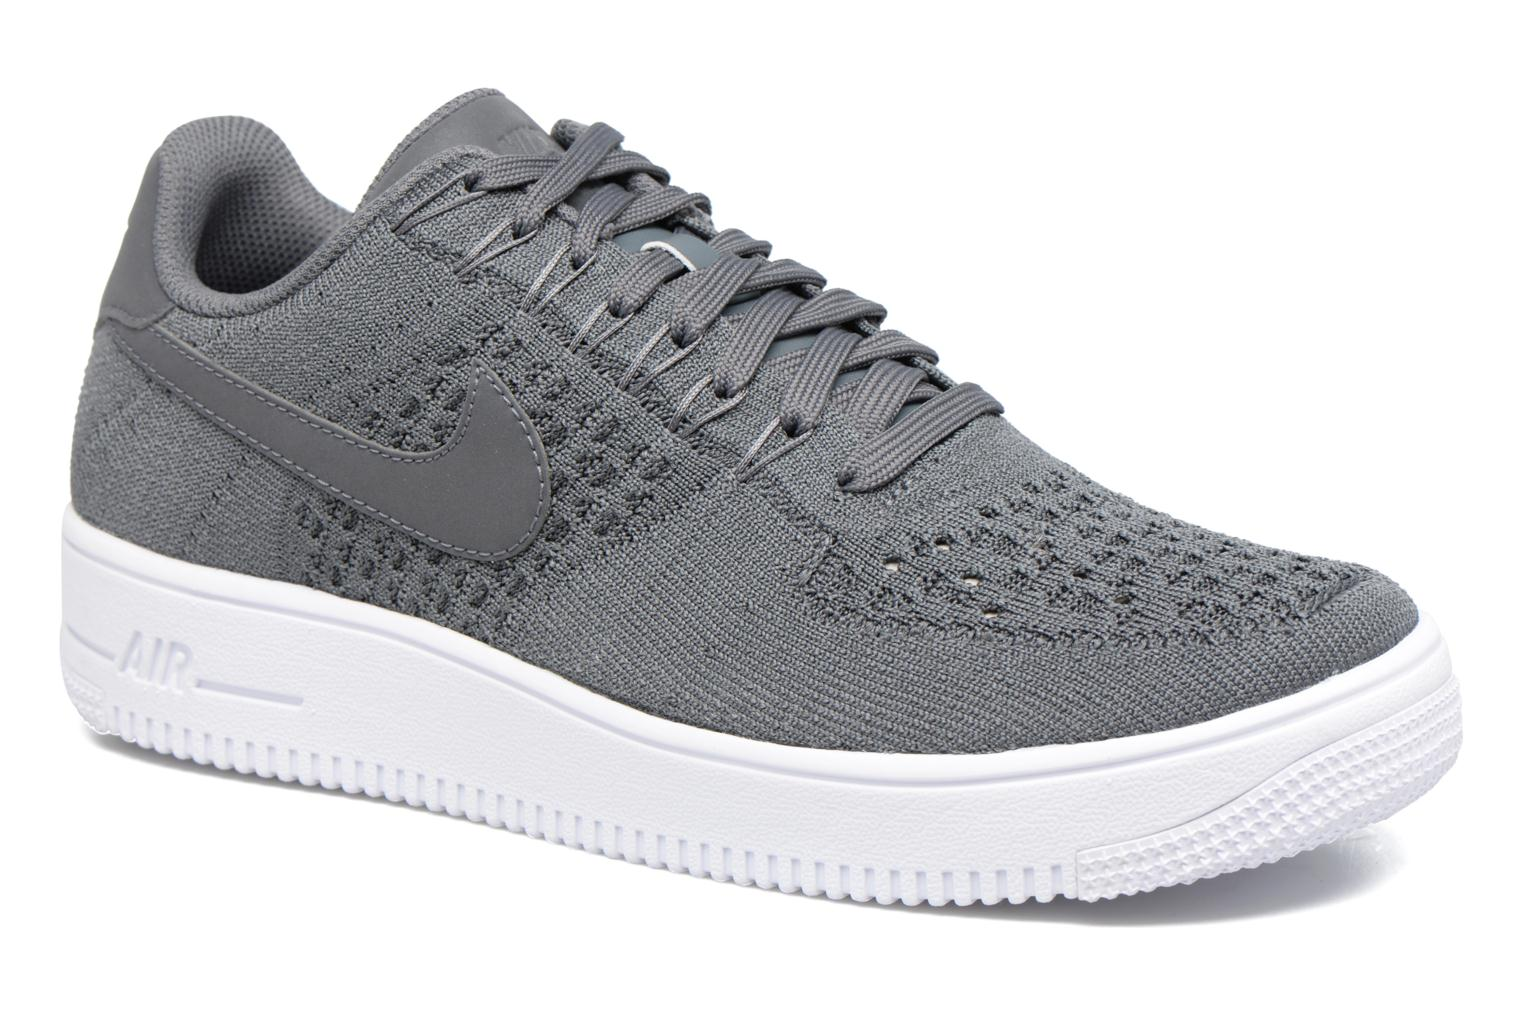 Baskets Nike Af1 Ultra Flyknit Low Gris vue détail/paire